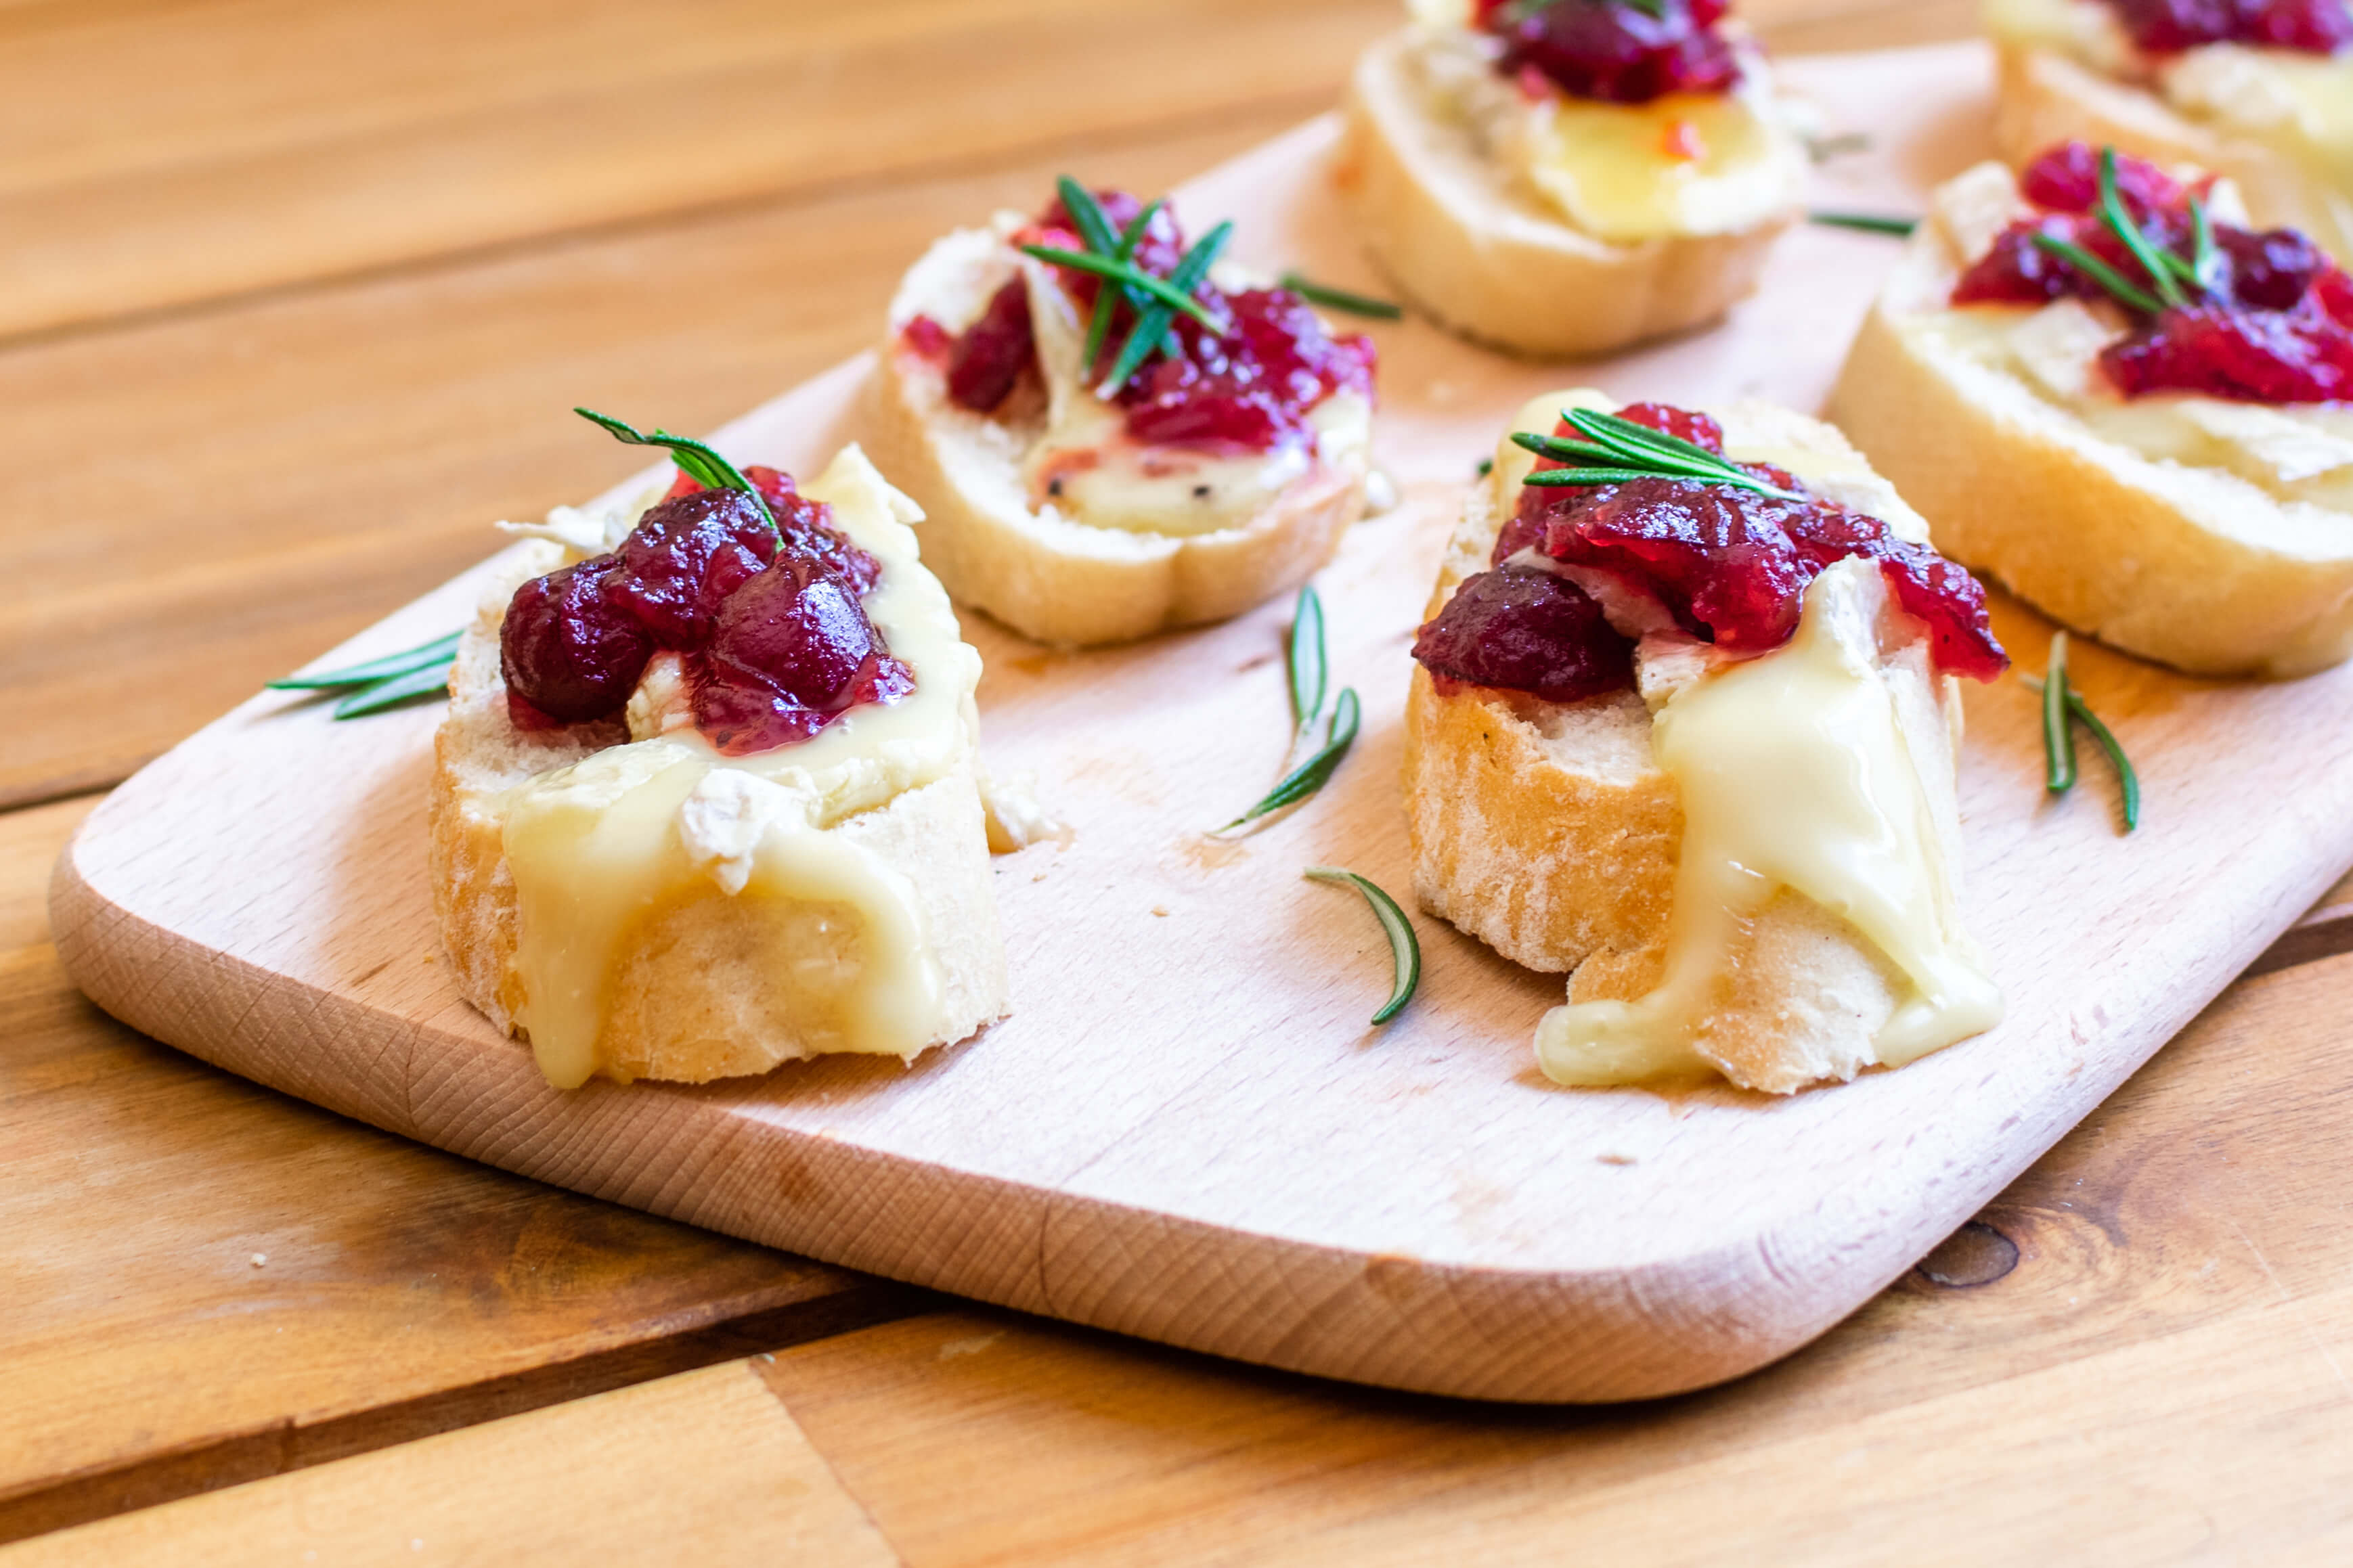 Baked cranberry brie crostini on a wooden board and garnished with rosemary sprigs.